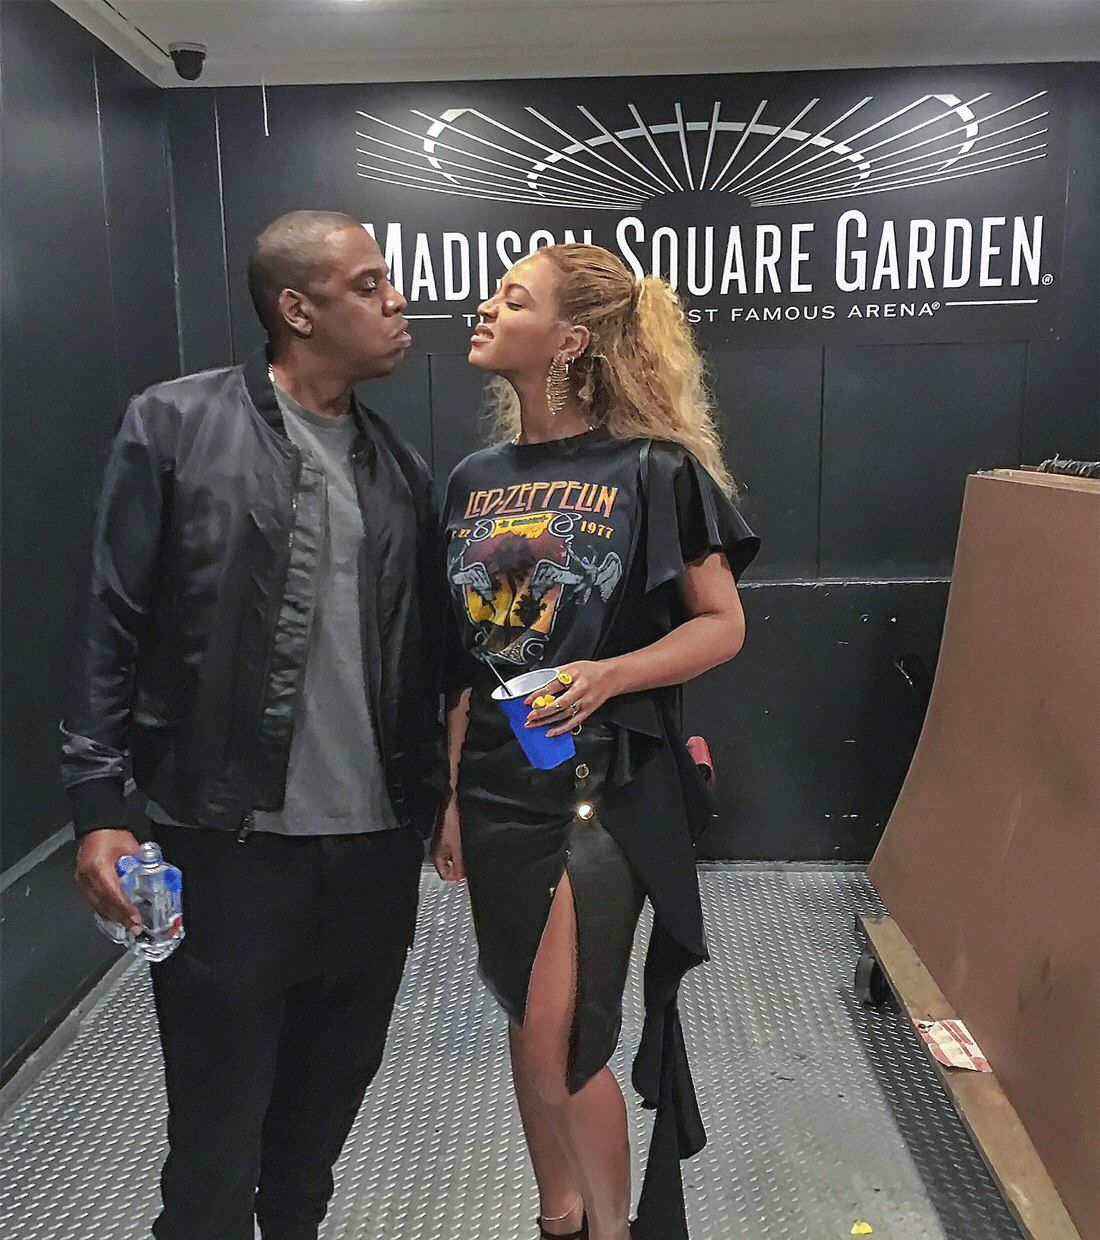 Beyonce Jay Z At Kanye West S Saint Pablo Tour In Madison Square Garden September 7th 2016 In N Beyonce And Jay Beyonce Husband Beyonce And Jay Z